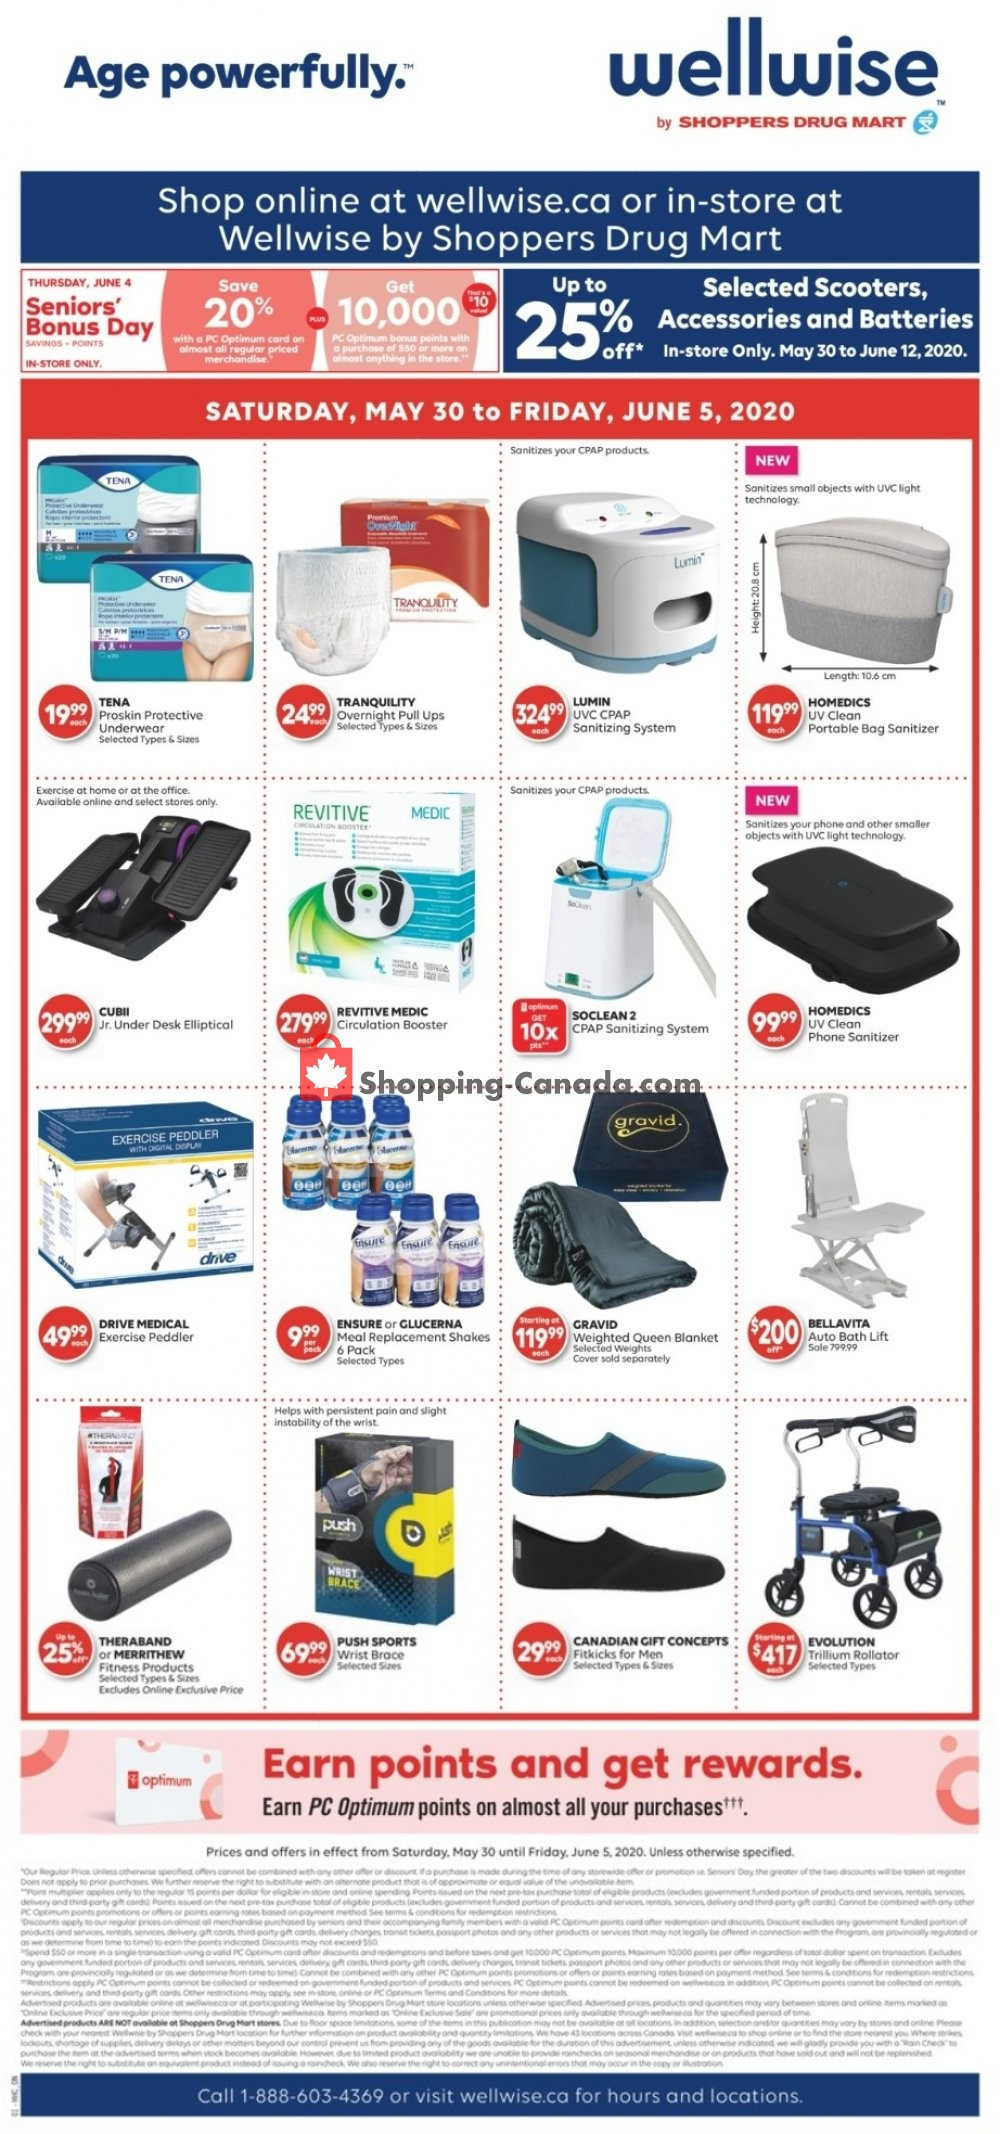 Flyer WellWise by Shoppers Drug Mart Canada - from Saturday May 30, 2020 to Friday June 5, 2020